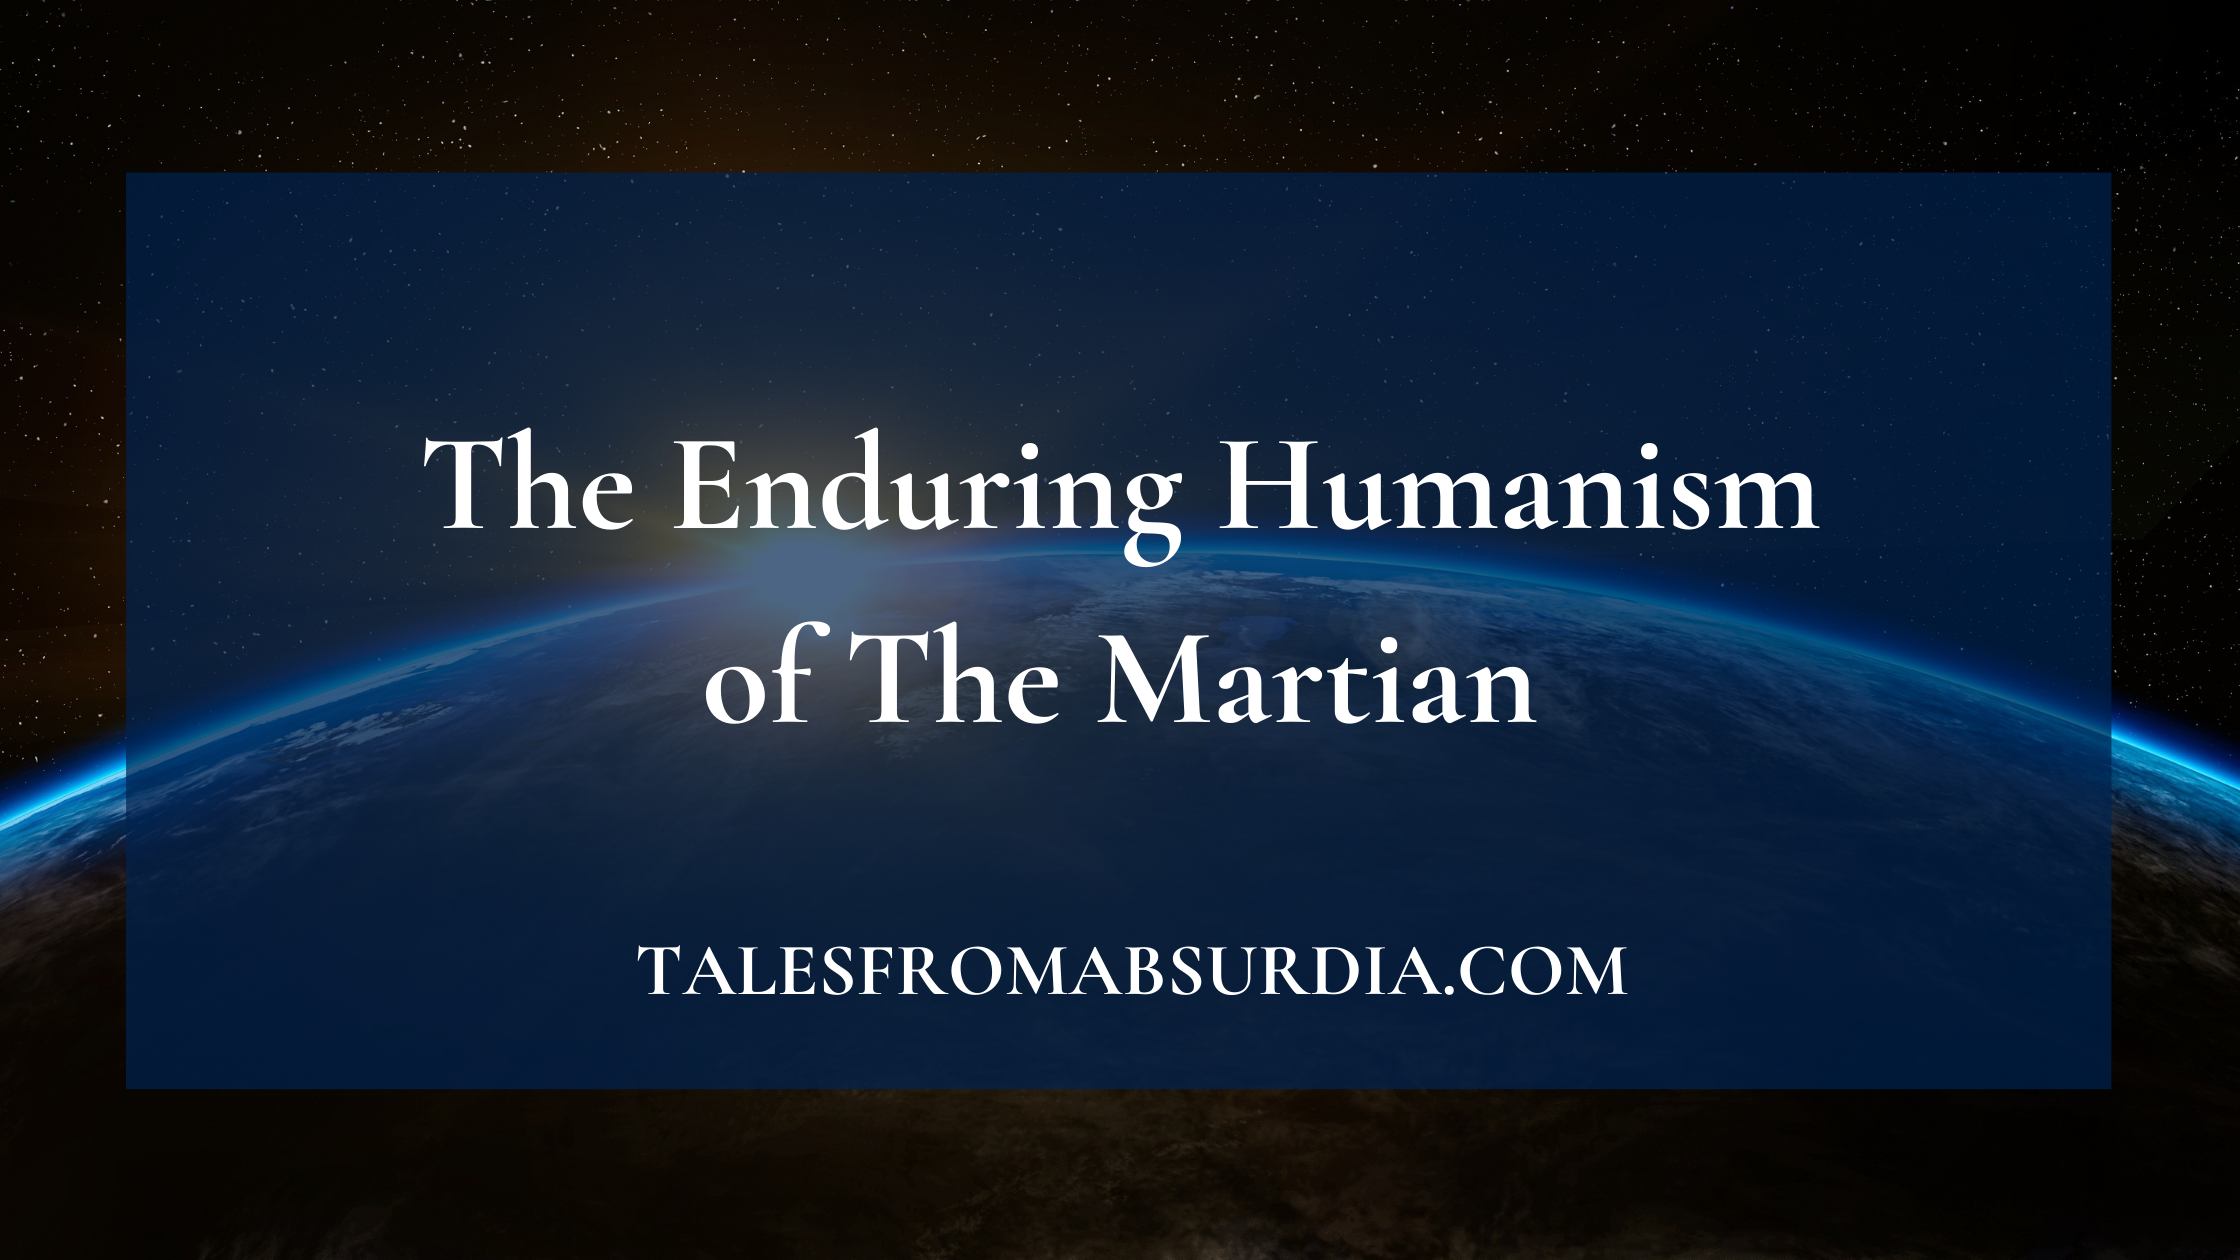 The Enduring Humanism of The Martian